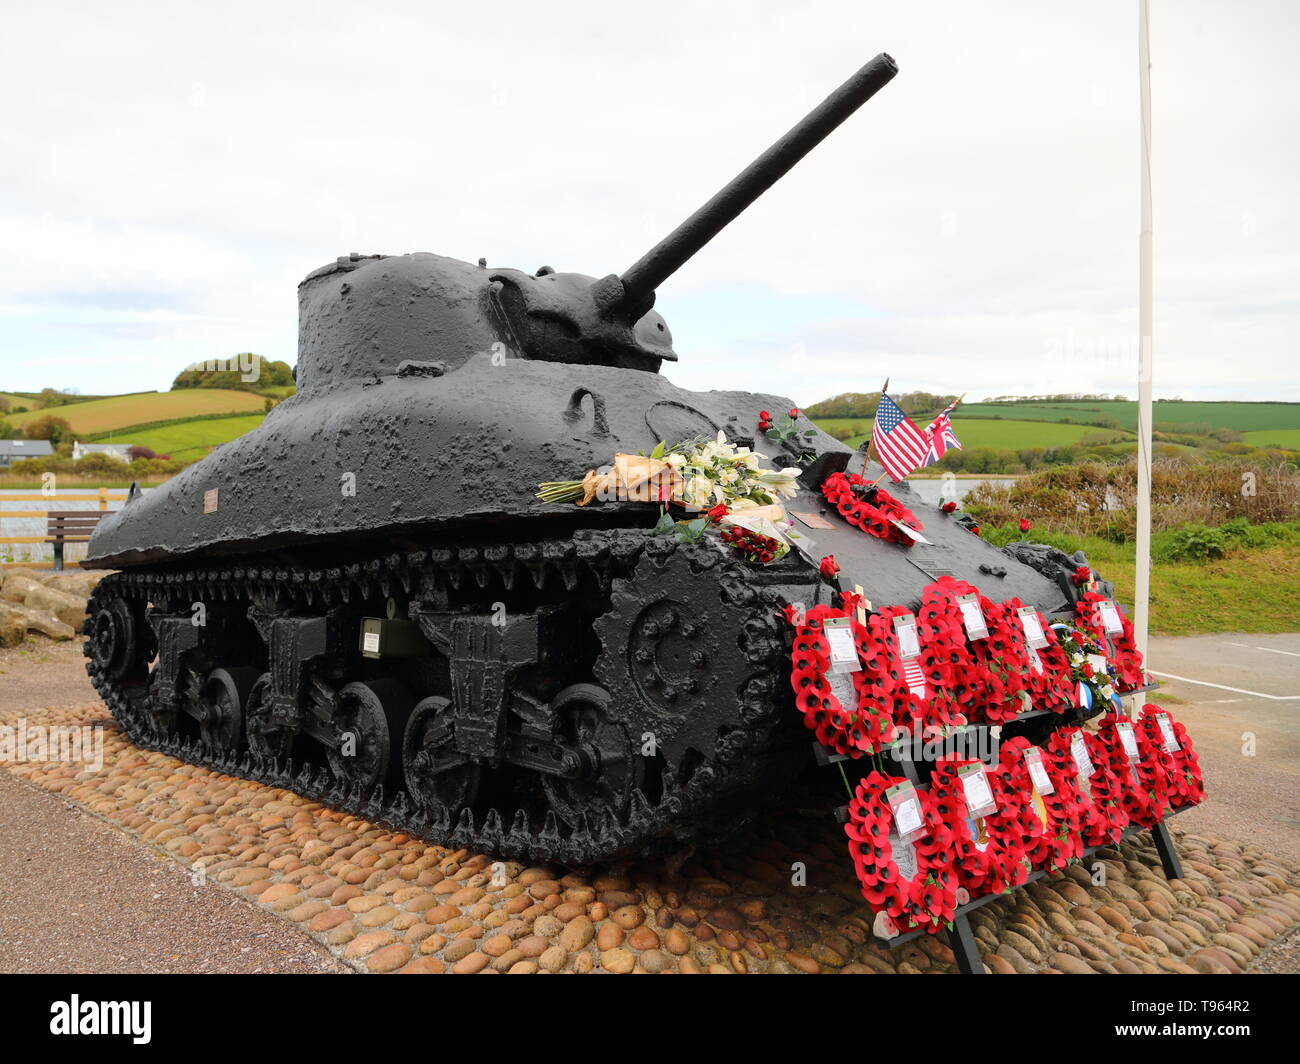 A Sherman tank recovered from the sea 40 years after it sank during an ill-fated exercise costing thousands of allied soldiers' lives in Devon, UK - Stock Image